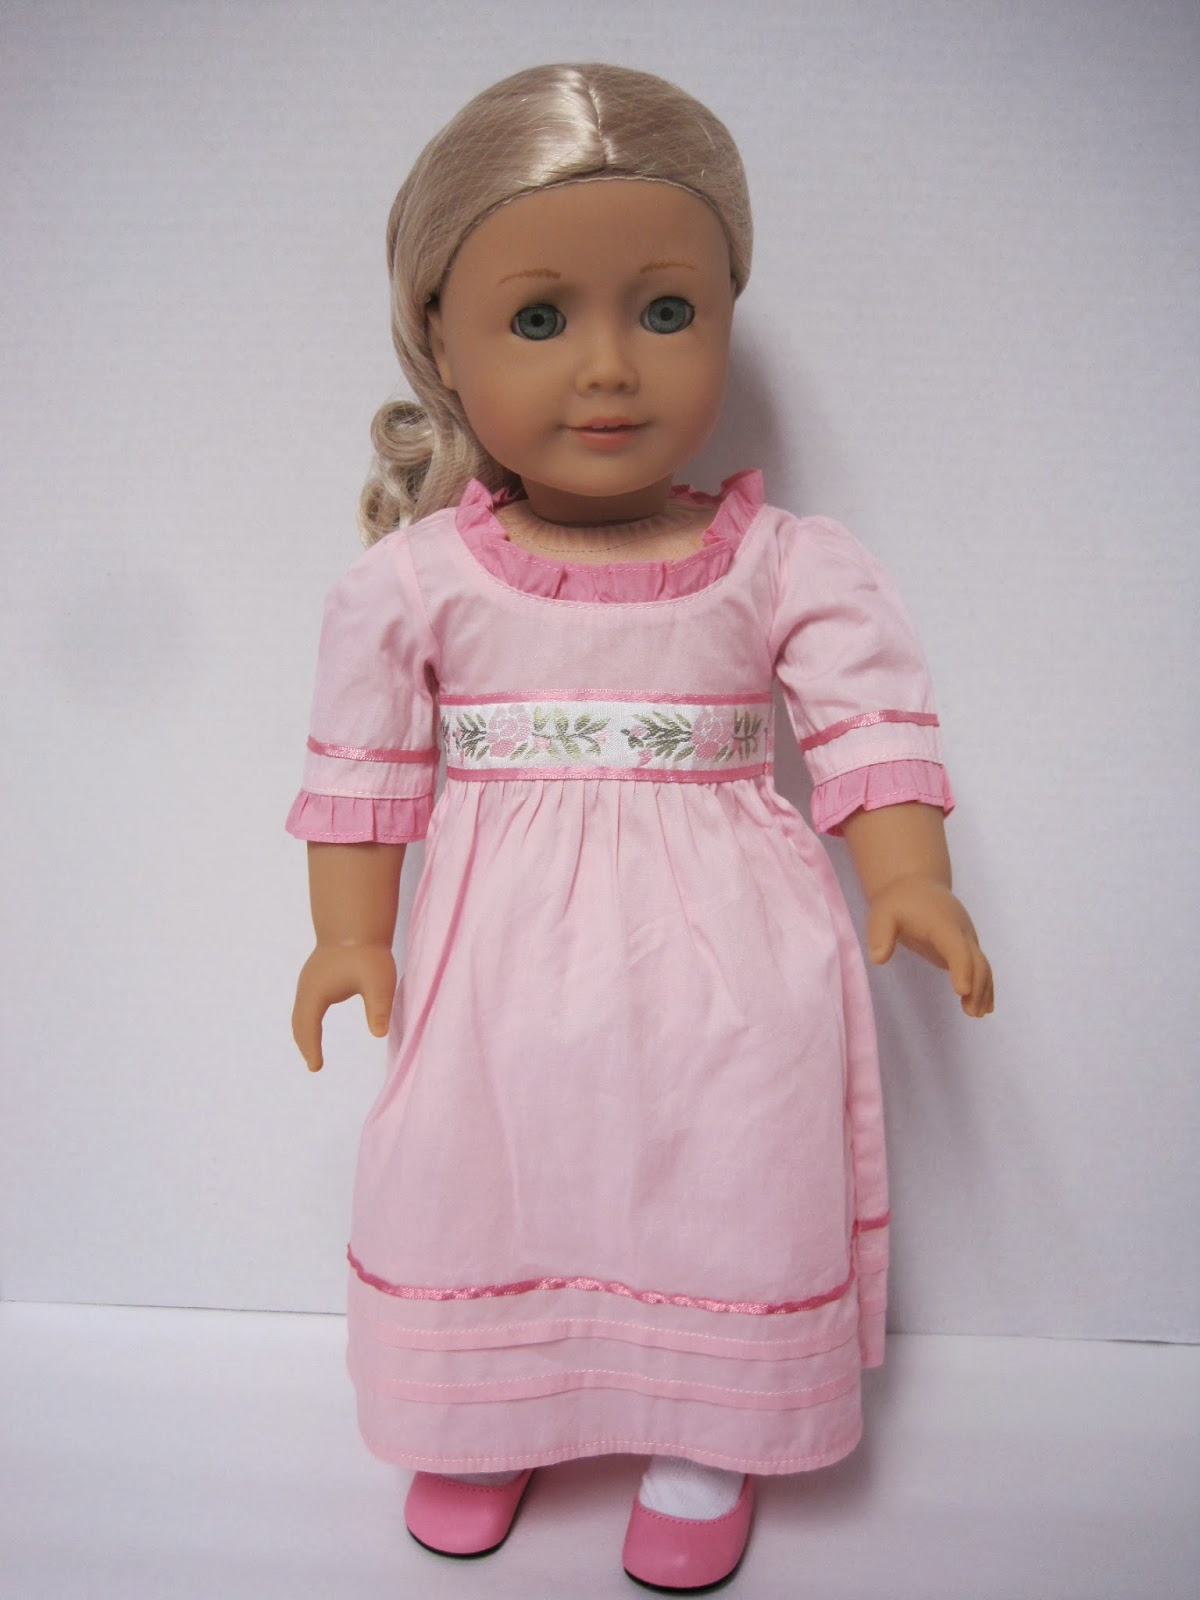 american girl doll care instructions